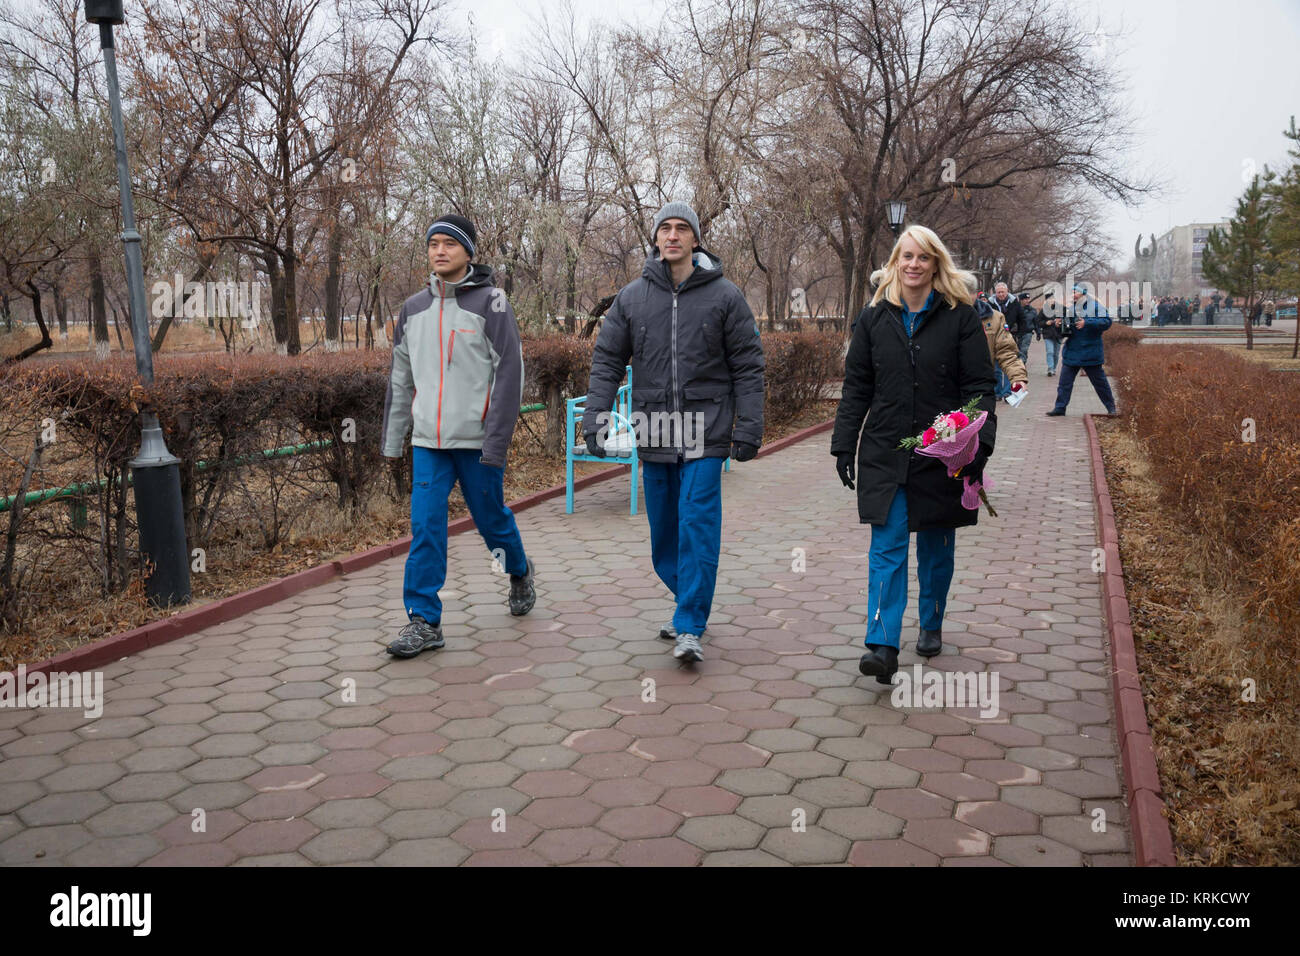 The Expedition 46-47 backup crewmembers took a break from their training Dec. 2 as they walked through the city - Stock Image